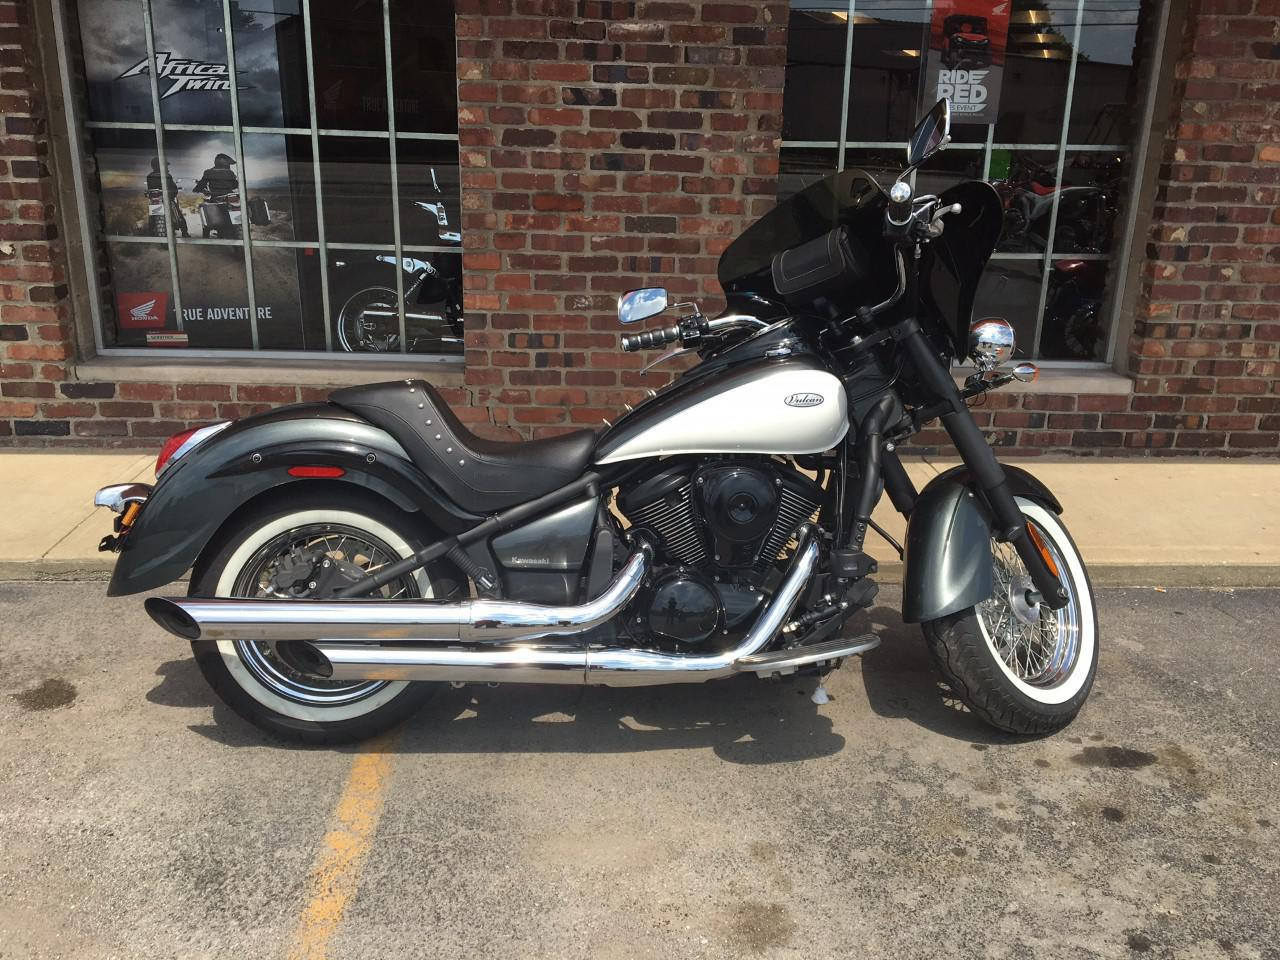 2012 kawasaki vulcan 900 classic for sale in indianapolis, in